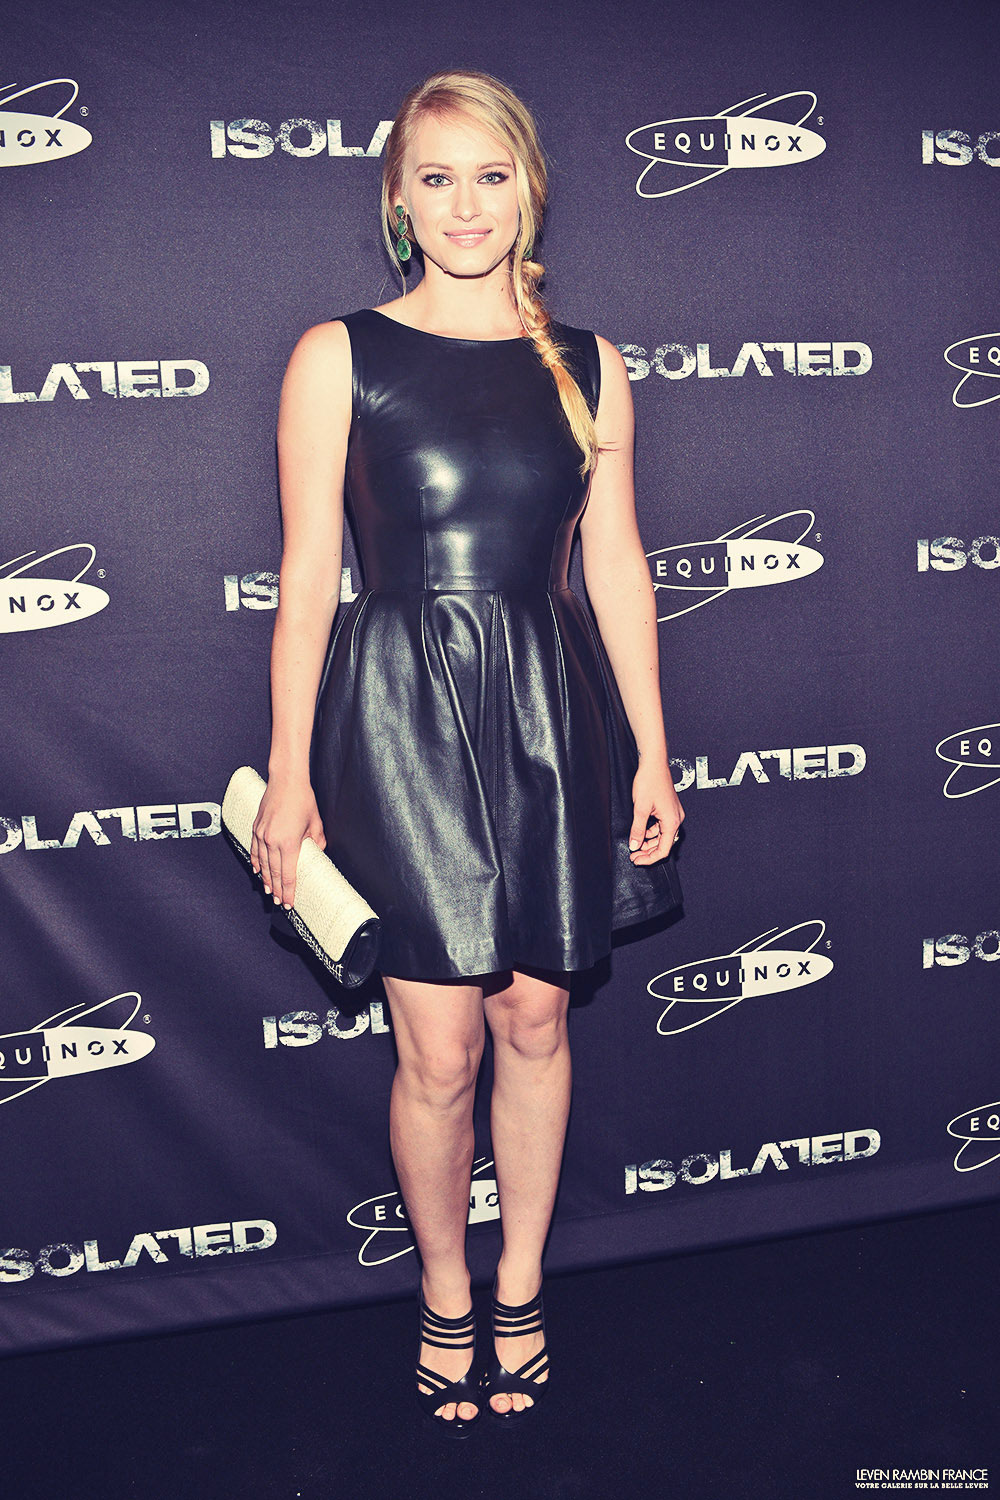 Leven Rambin attends Isolated premiere